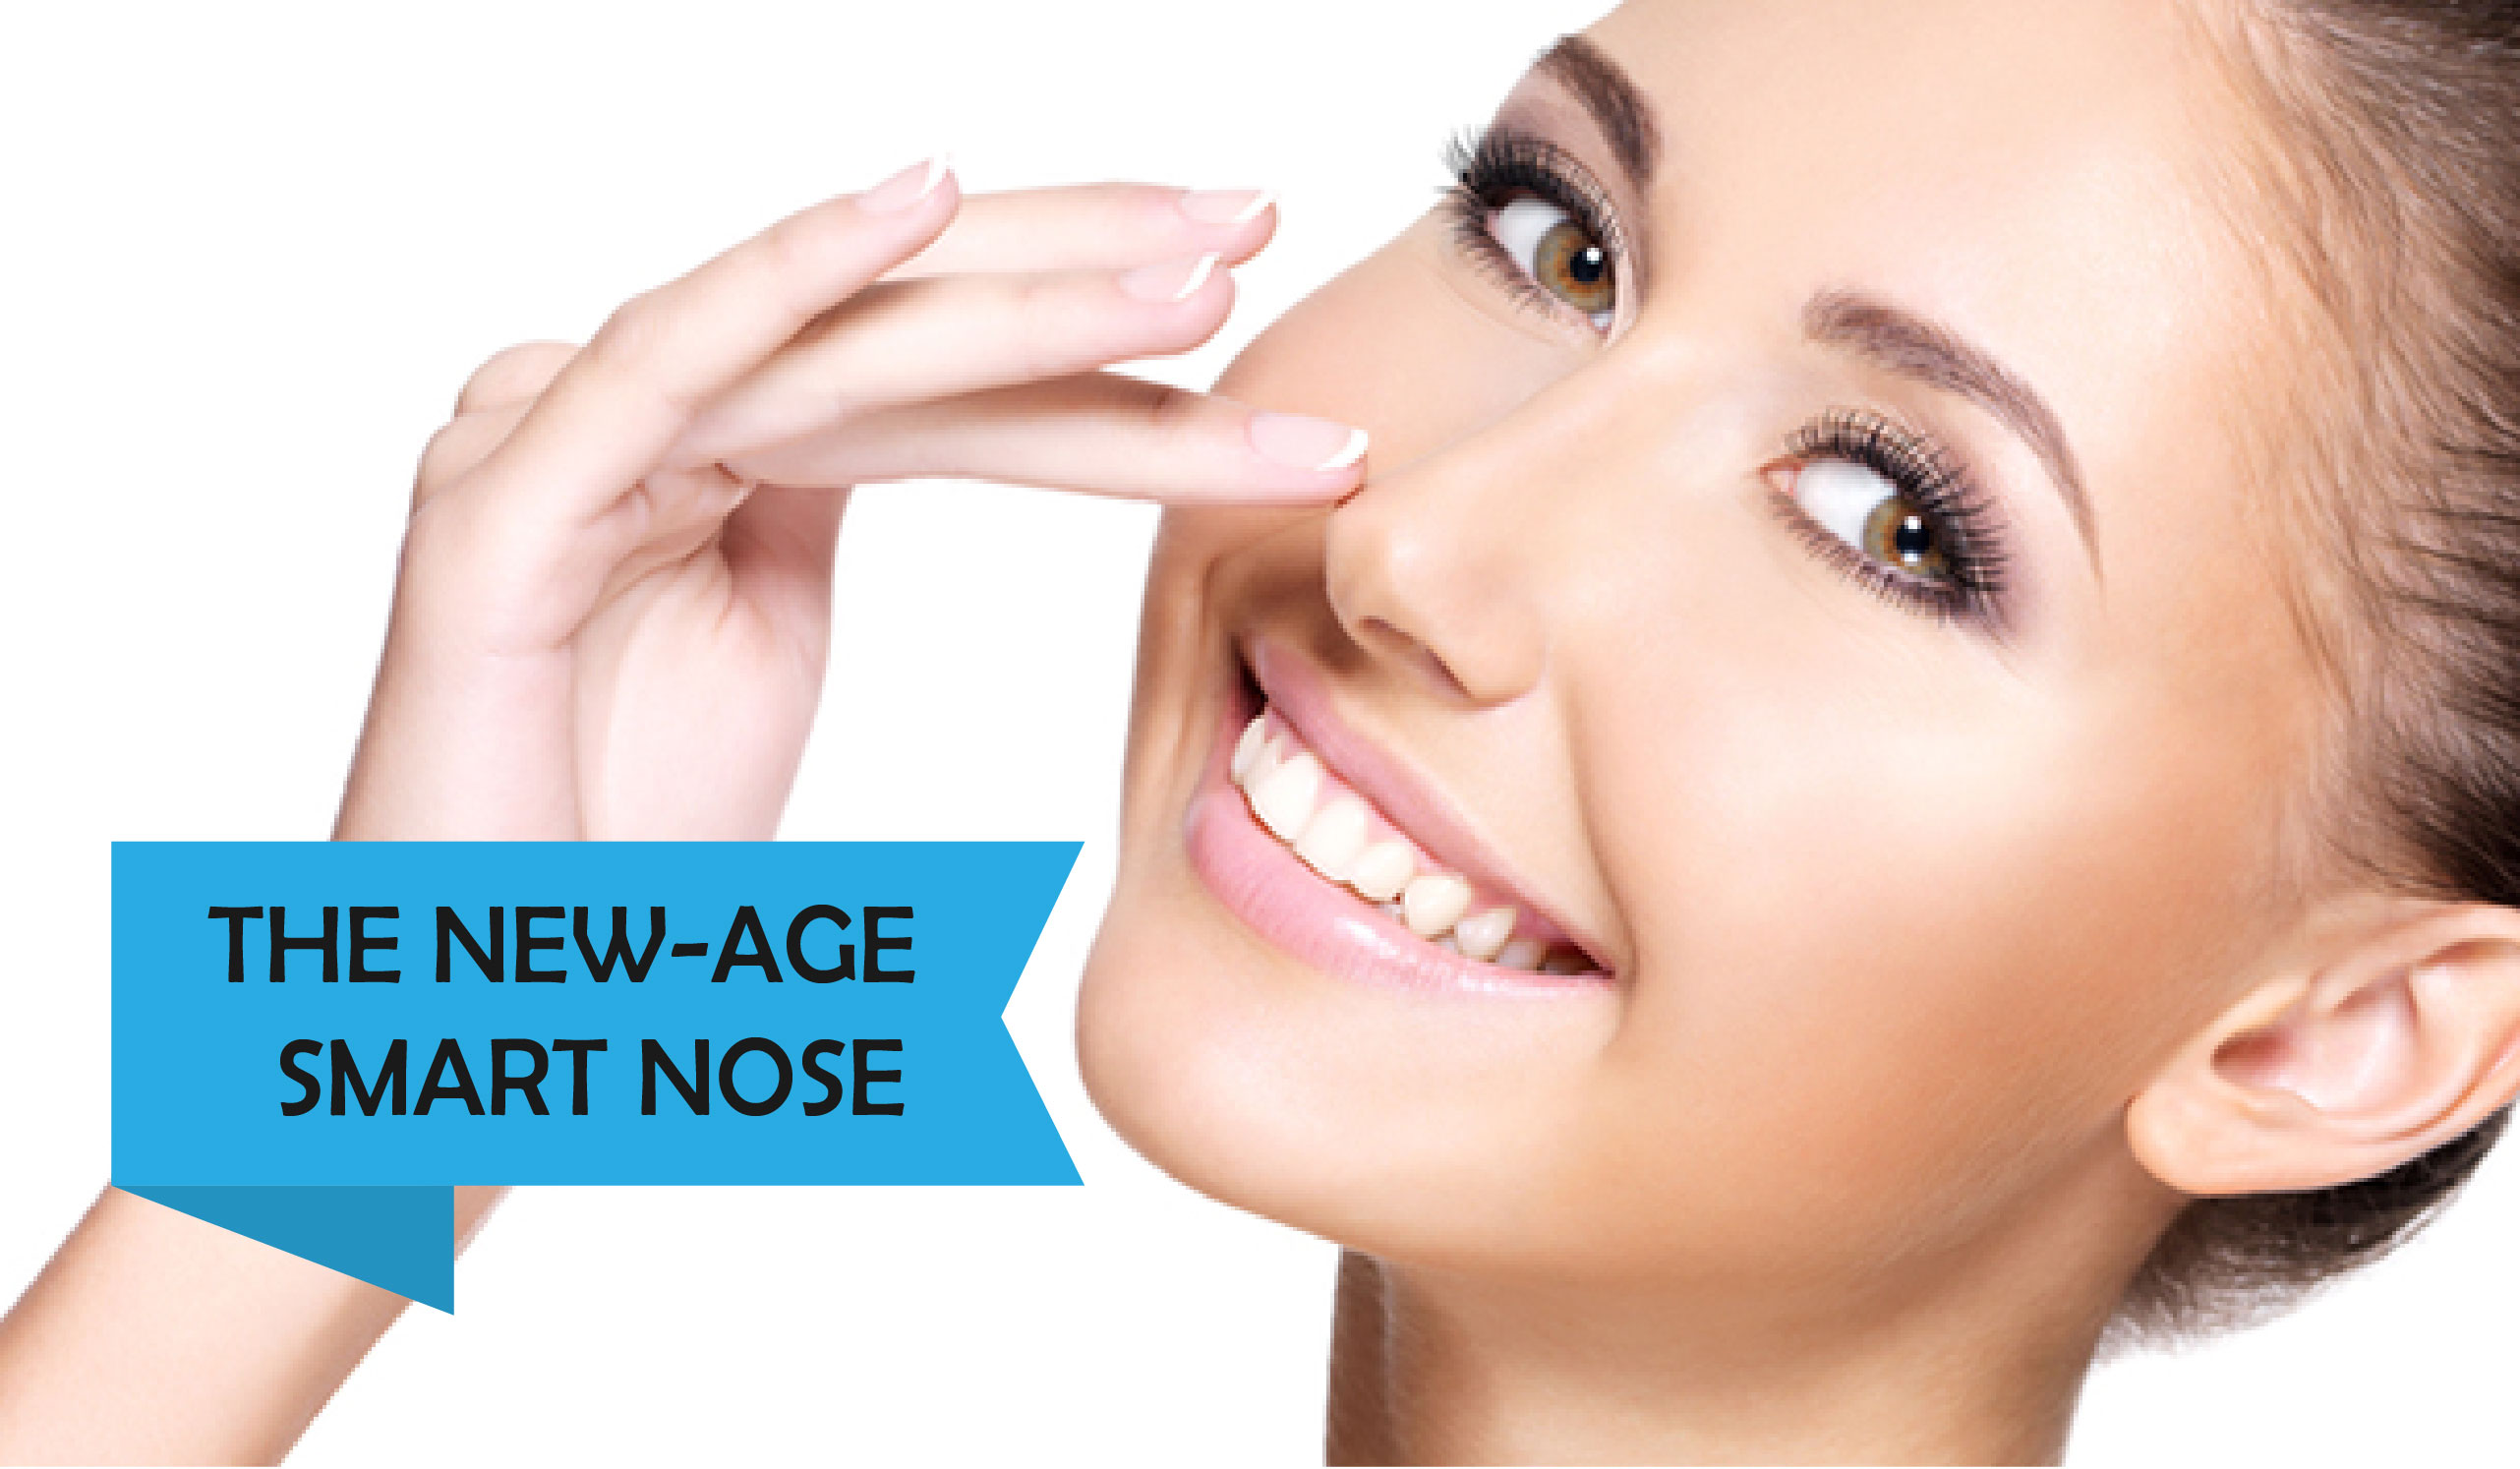 10 The new age smart nose